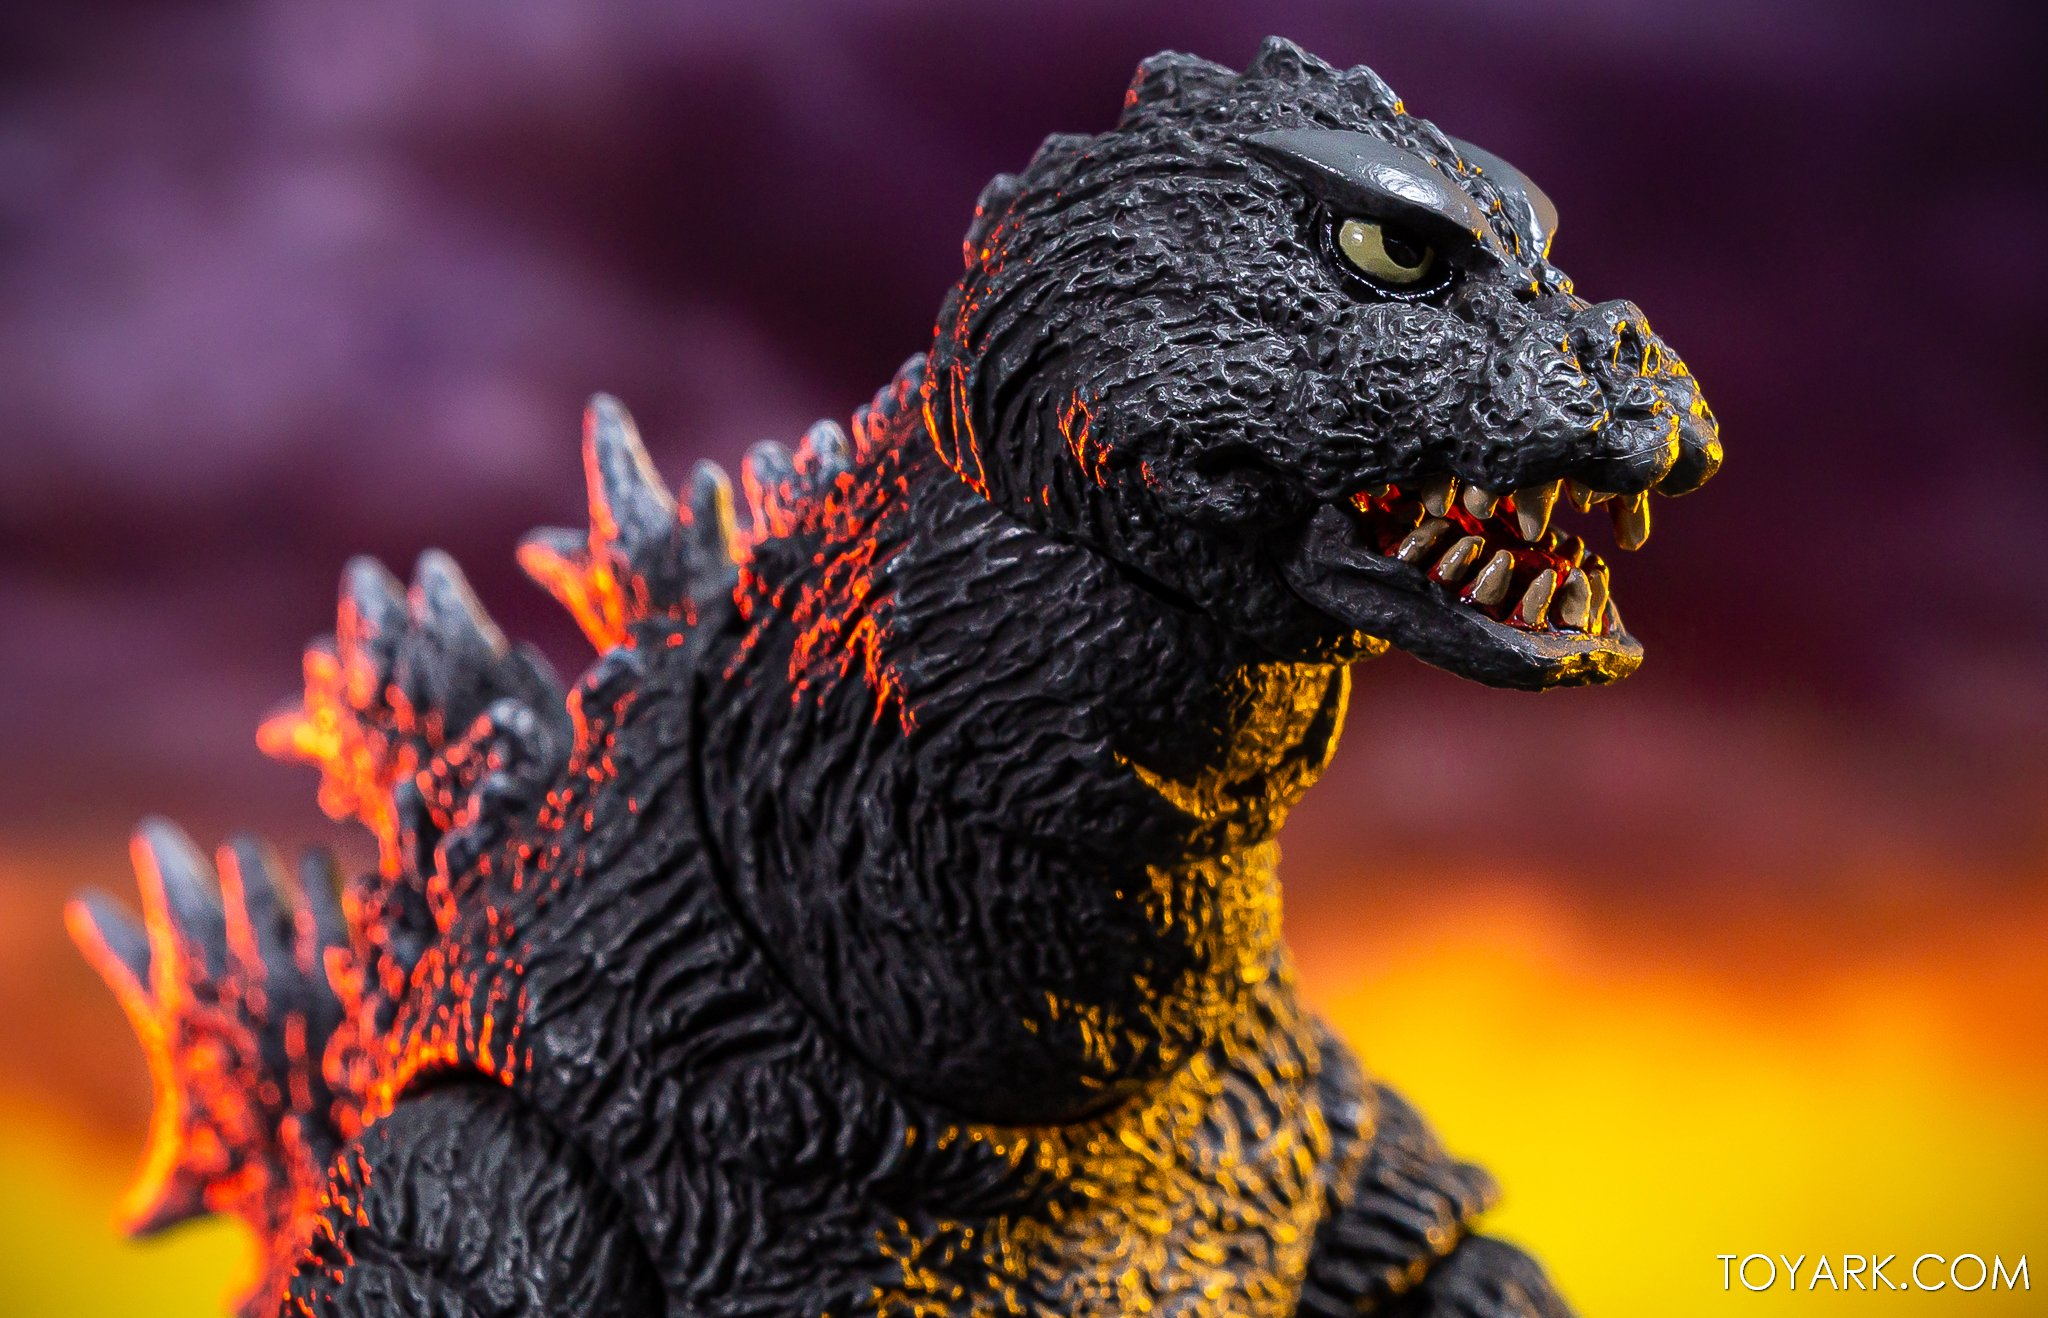 https://news.toyark.com/wp-content/uploads/sites/4/2019/12/NECA-Godzilla-1964-Figure-029.jpg